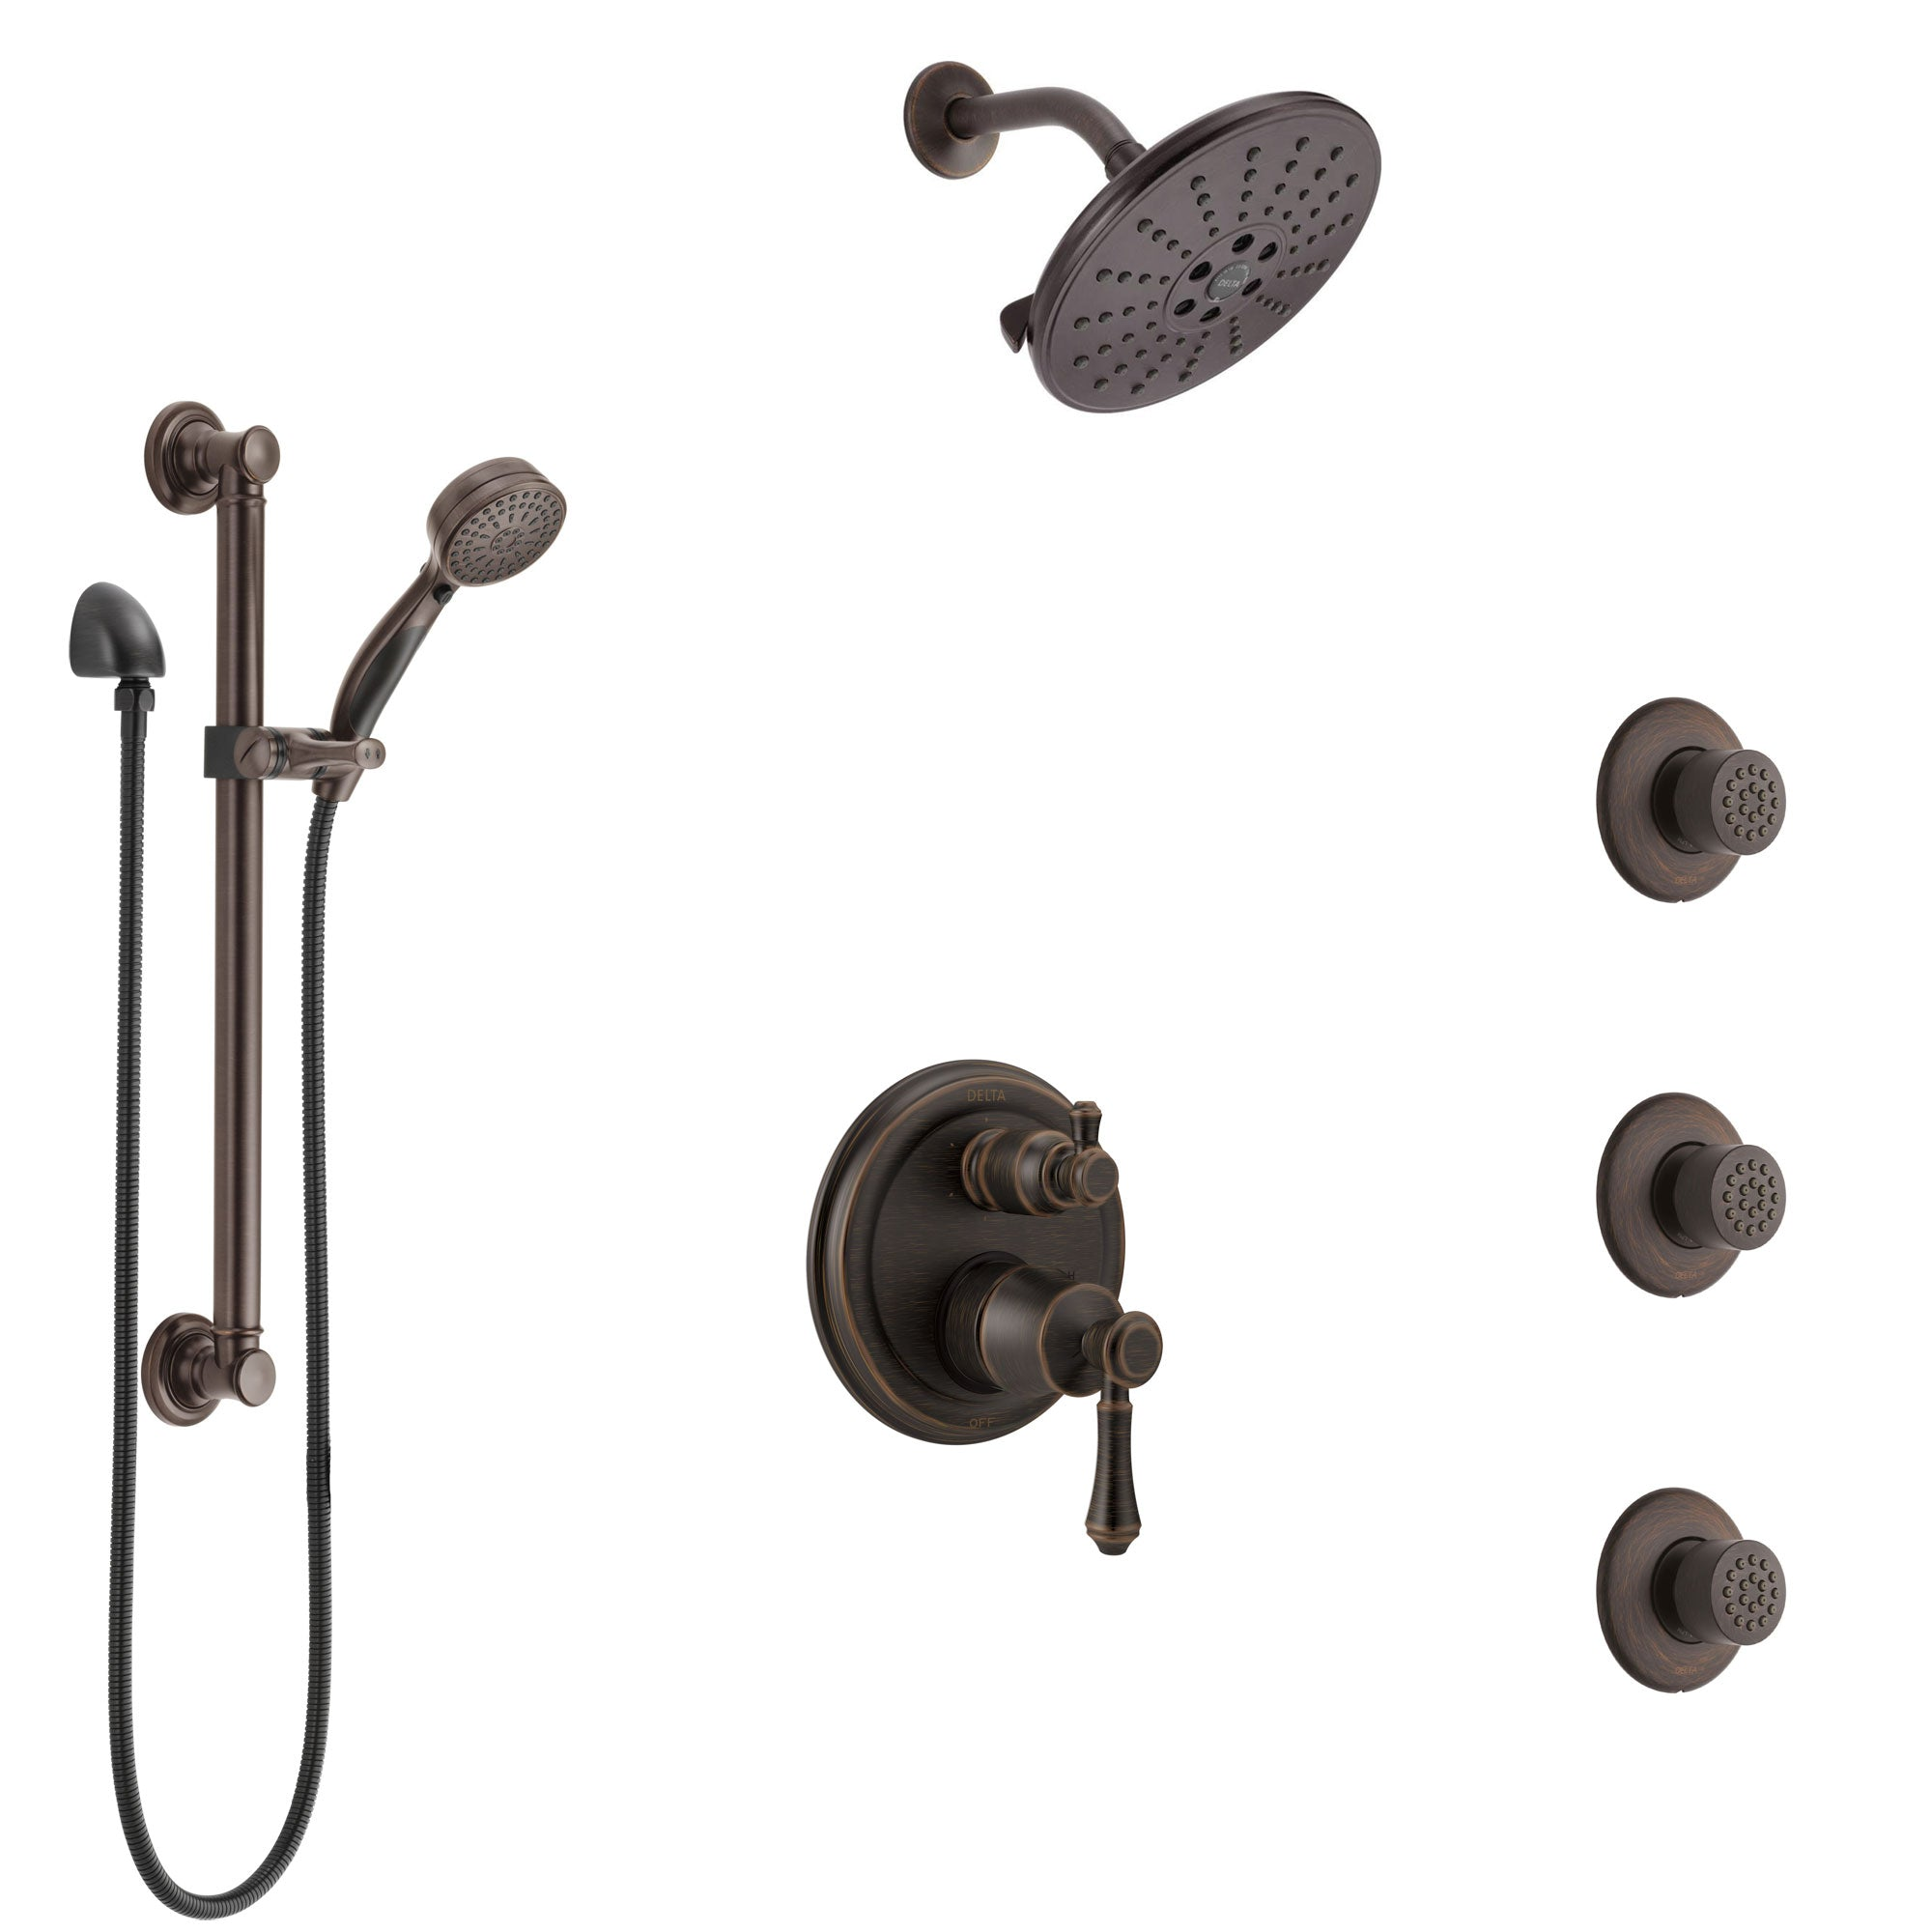 Delta Cassidy Venetian Bronze Shower System with Control Handle, Integrated Diverter, Showerhead, 3 Body Sprays, and Grab Bar Hand Shower SS24997RB7